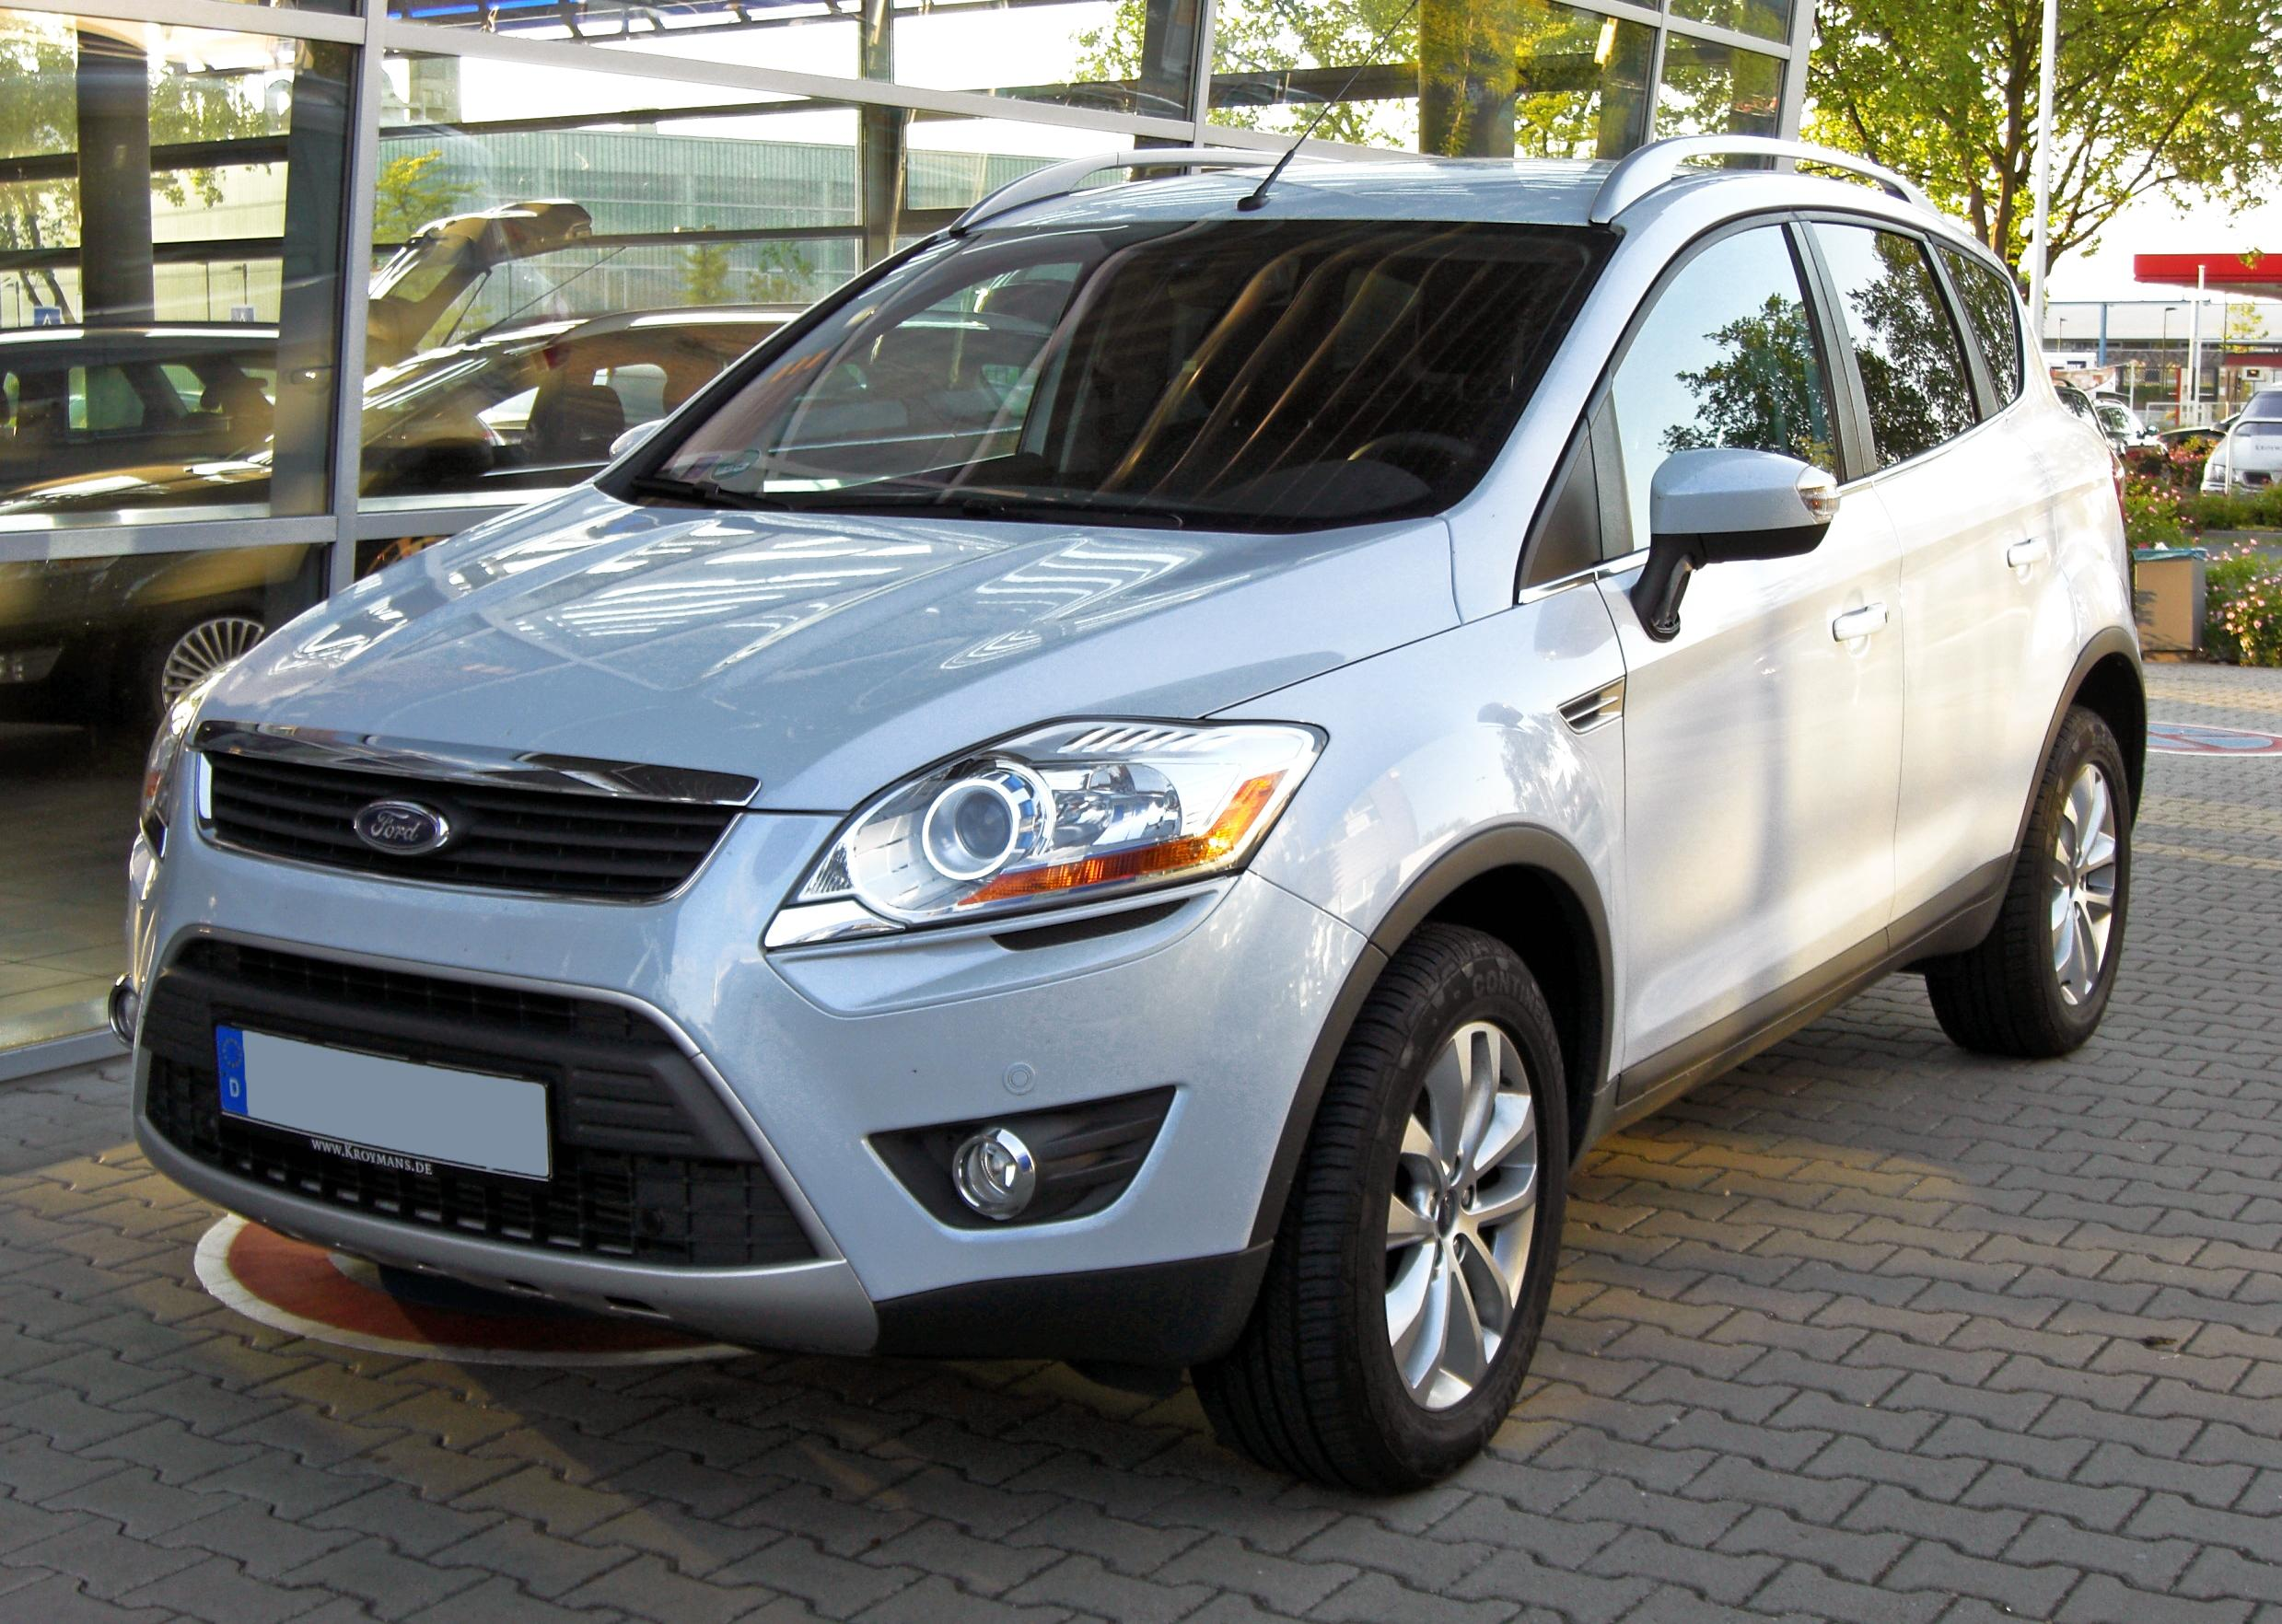 Ford Kuga 2009 Review Amazing Pictures And Images Look At The Car Fuse Box Photo 2